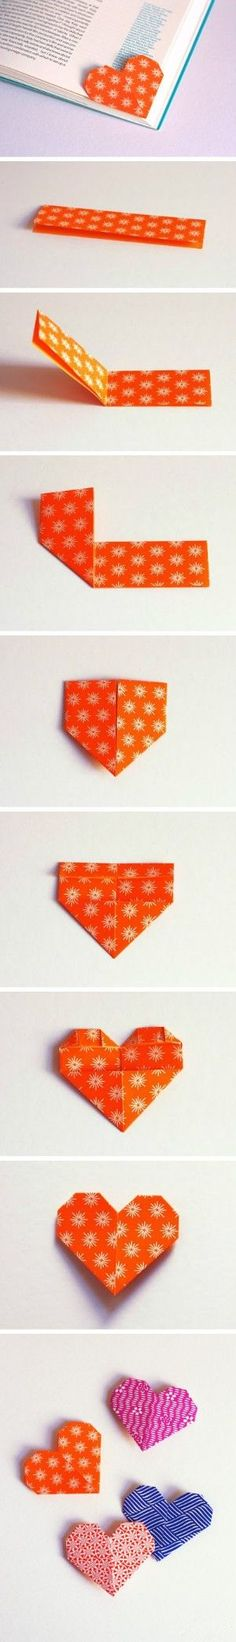 Origami Heart Bookmark: